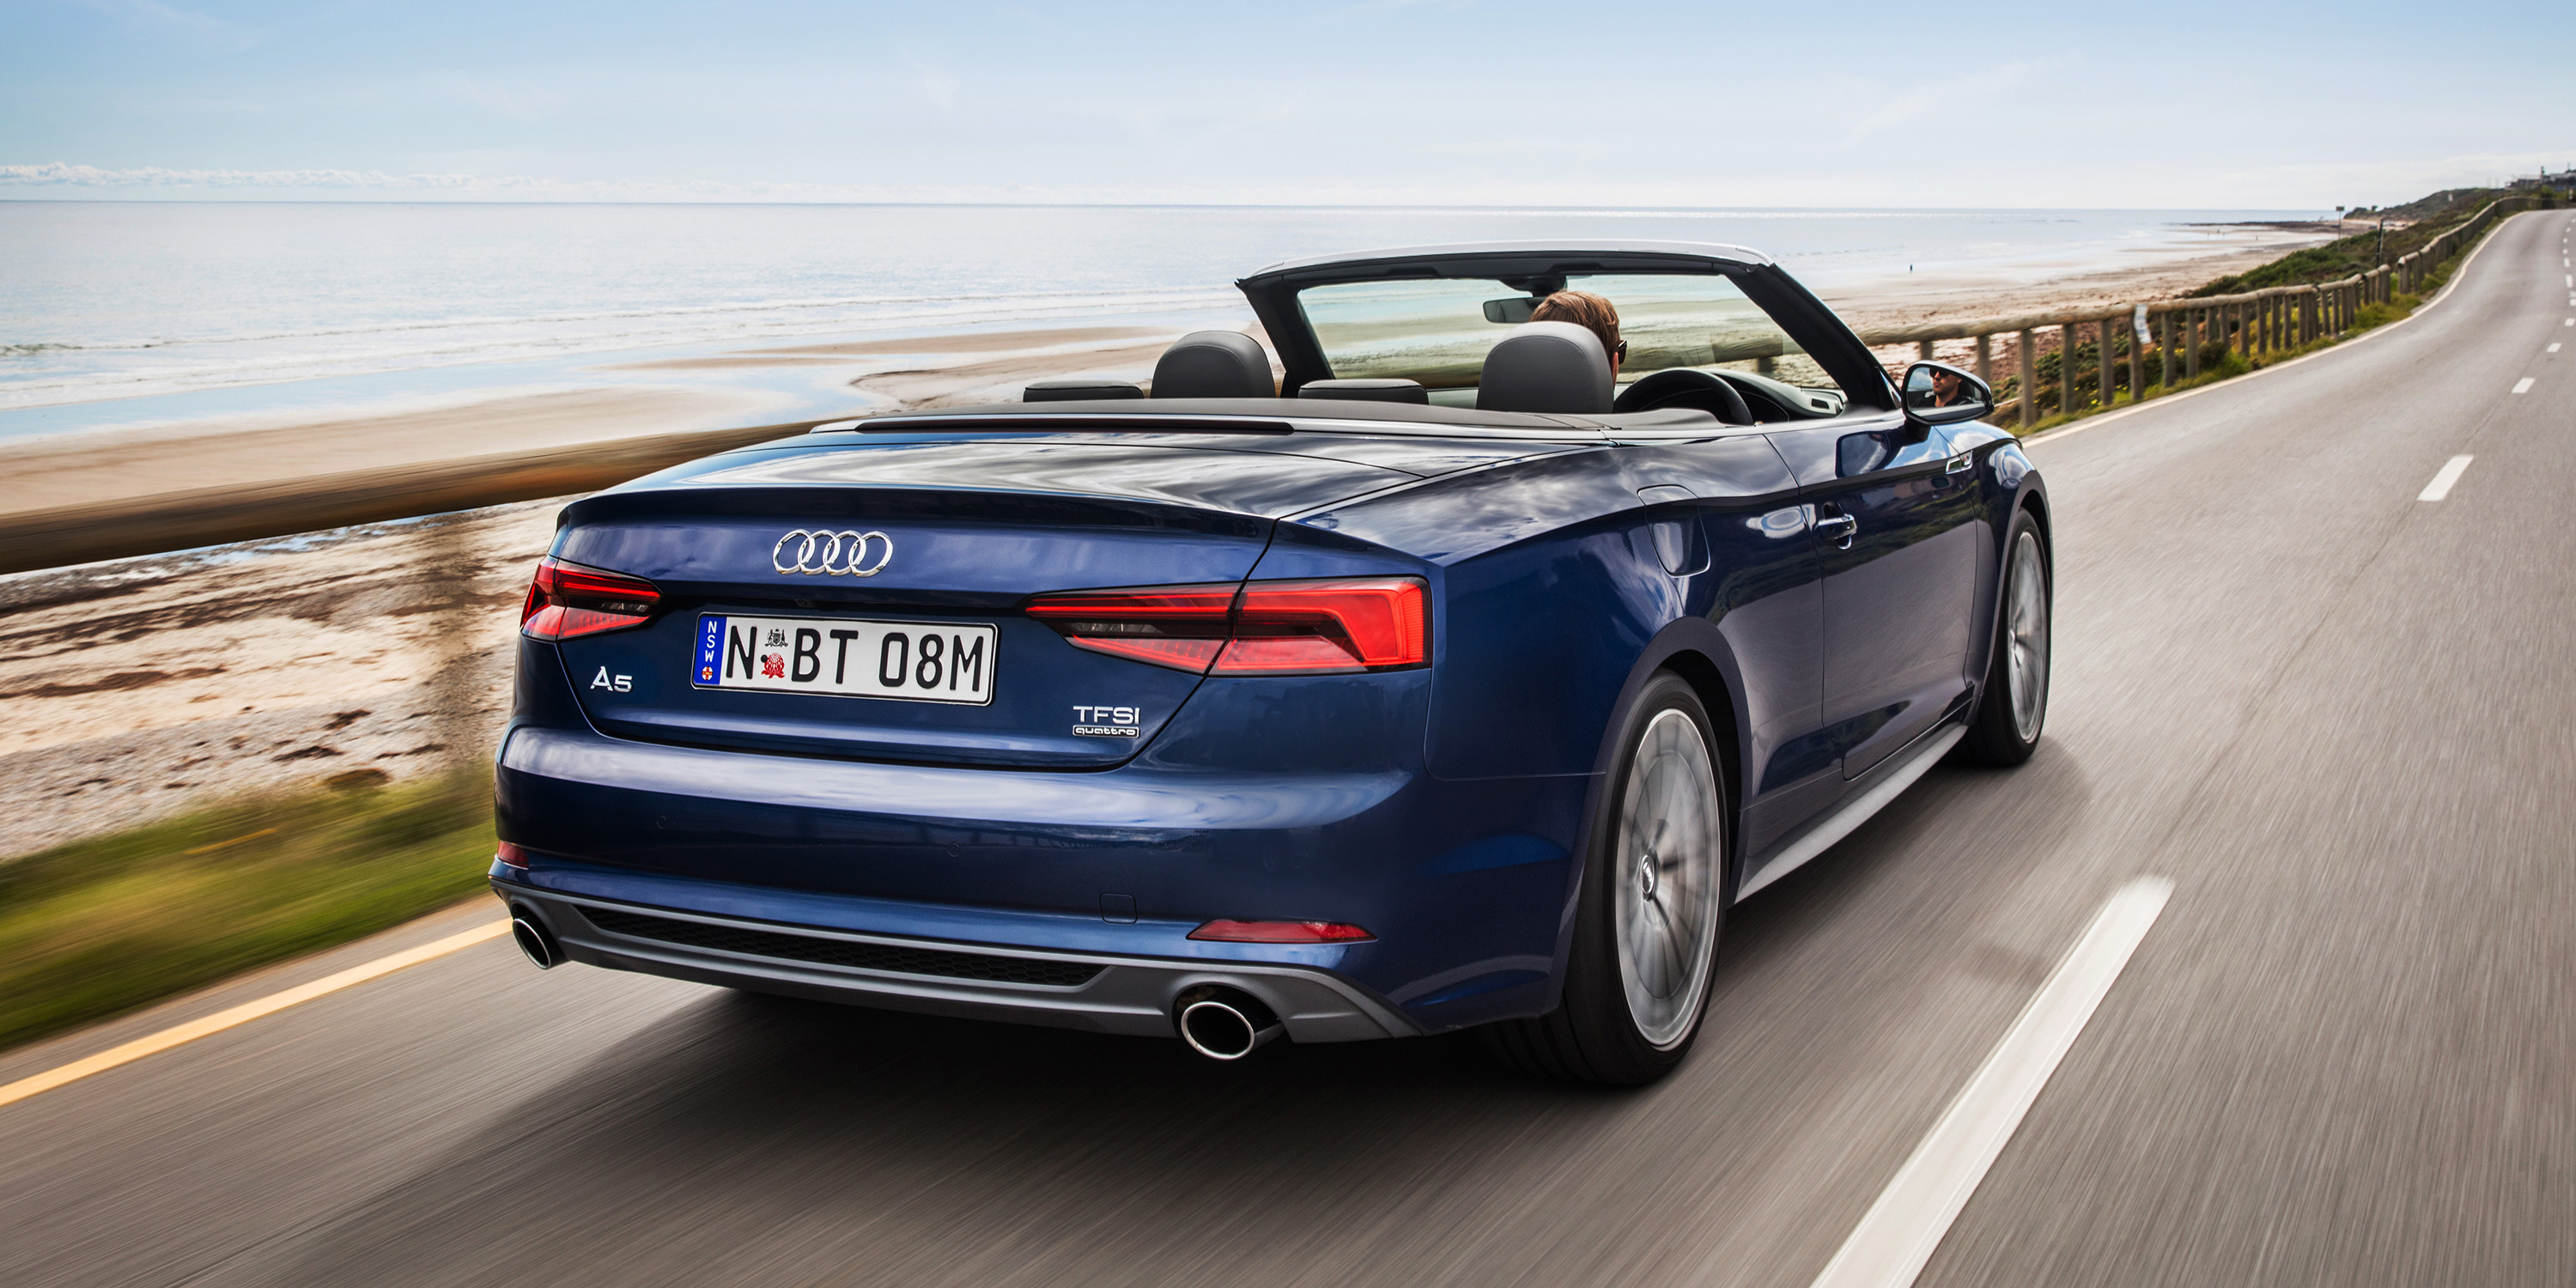 2018 Audi A5 Amp S5 Cabriolet Pricing And Specs Photos 1